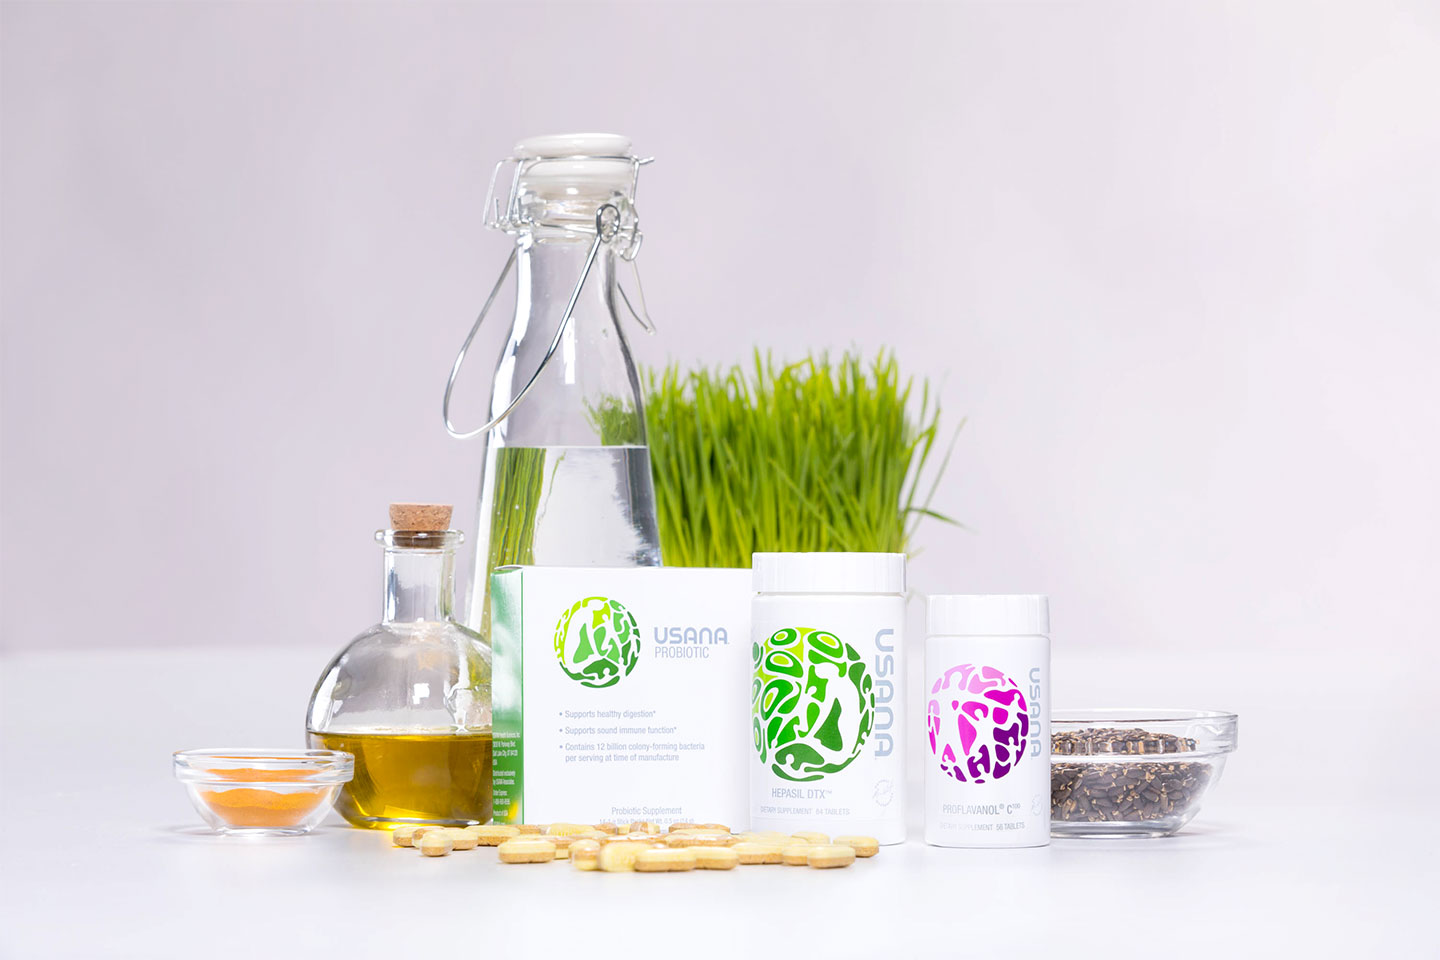 USANA—High-Quality, Science-Based Nutrition and Skin Care